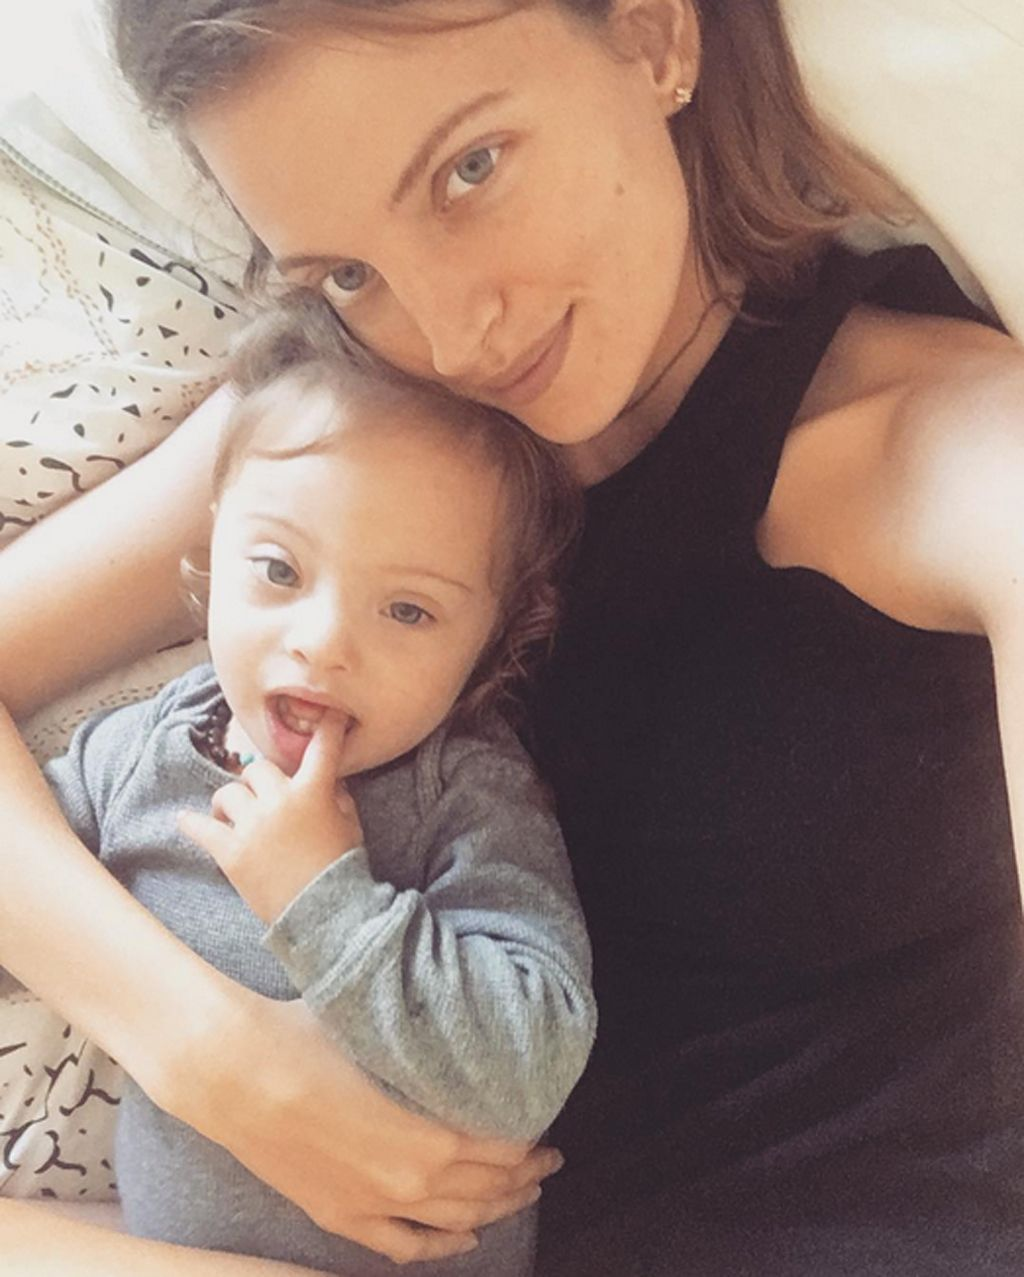 PRECIOUS ANGEL! Model Amanda Booth on Raising a Son with Down Syndrome: 'I Need People to See Him for Who HeIs'